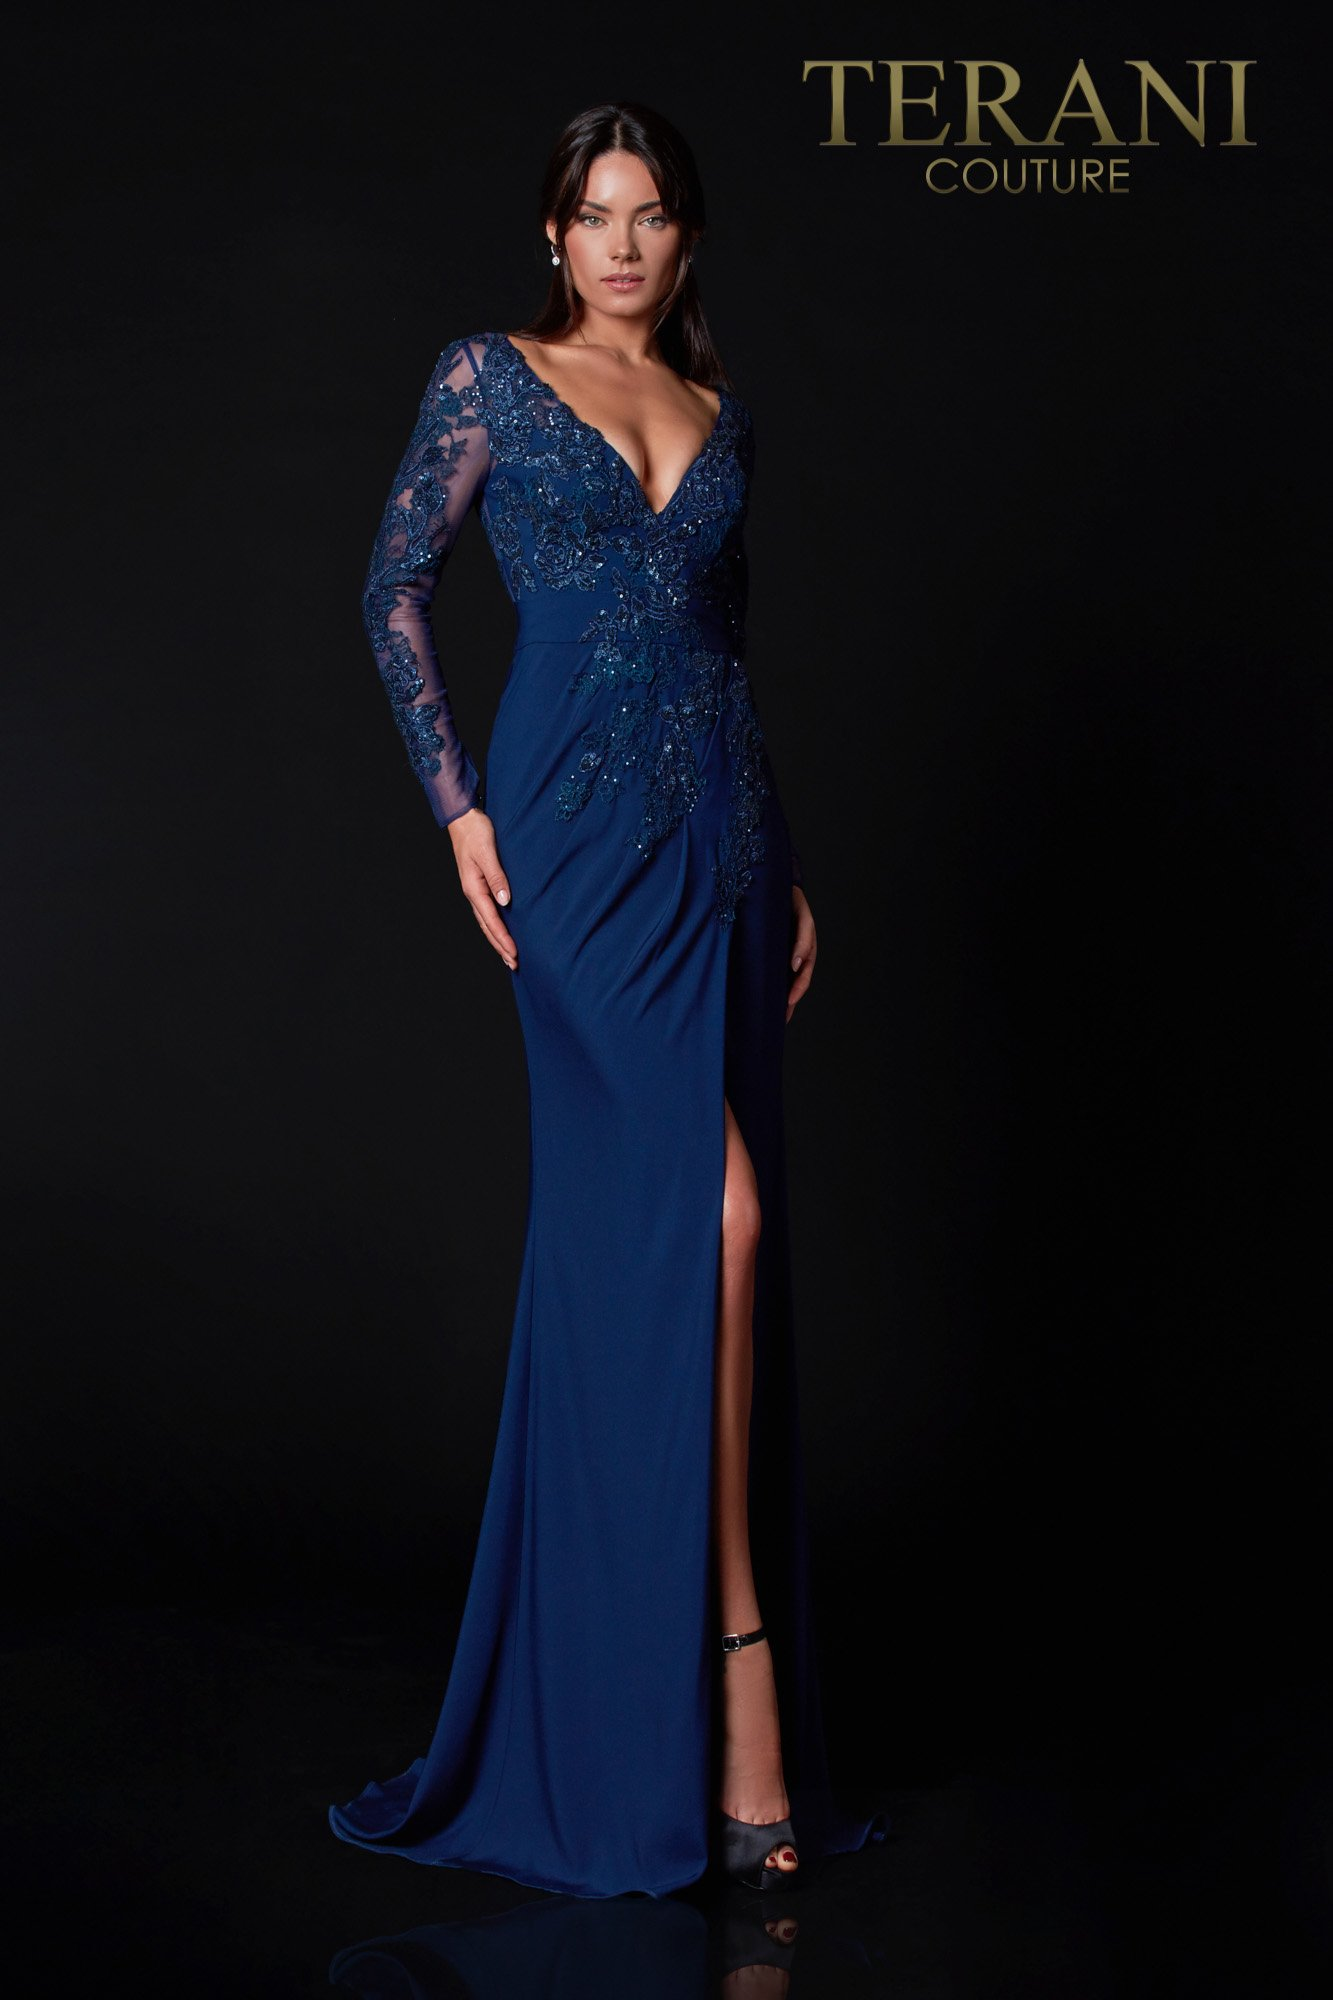 Navy Mother Of The Bride Dress With Applique - 2111M5275